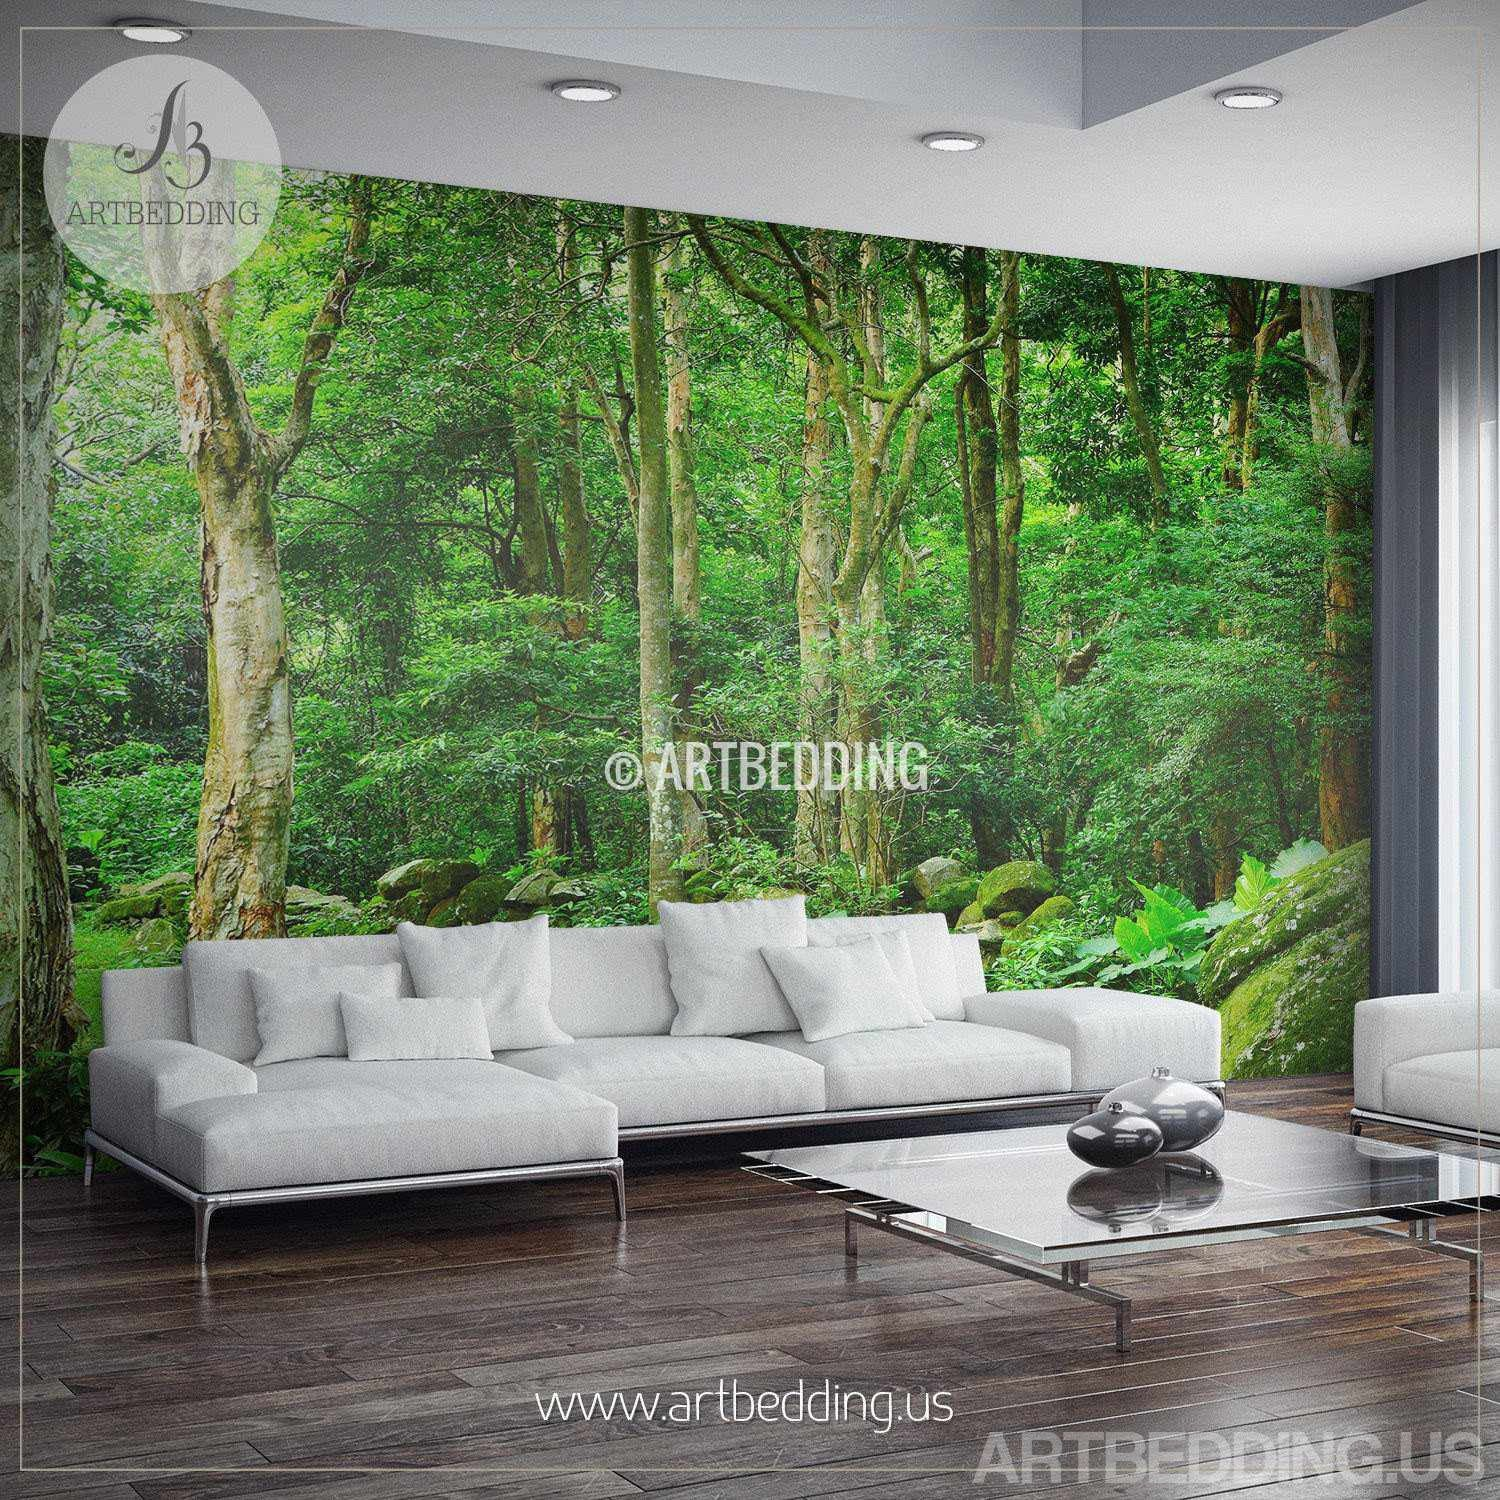 ... Green Forest Wall Mural, Photo Mural Deep Green Forest Self Adhesive  Peel U0026 Stick, ... Part 45